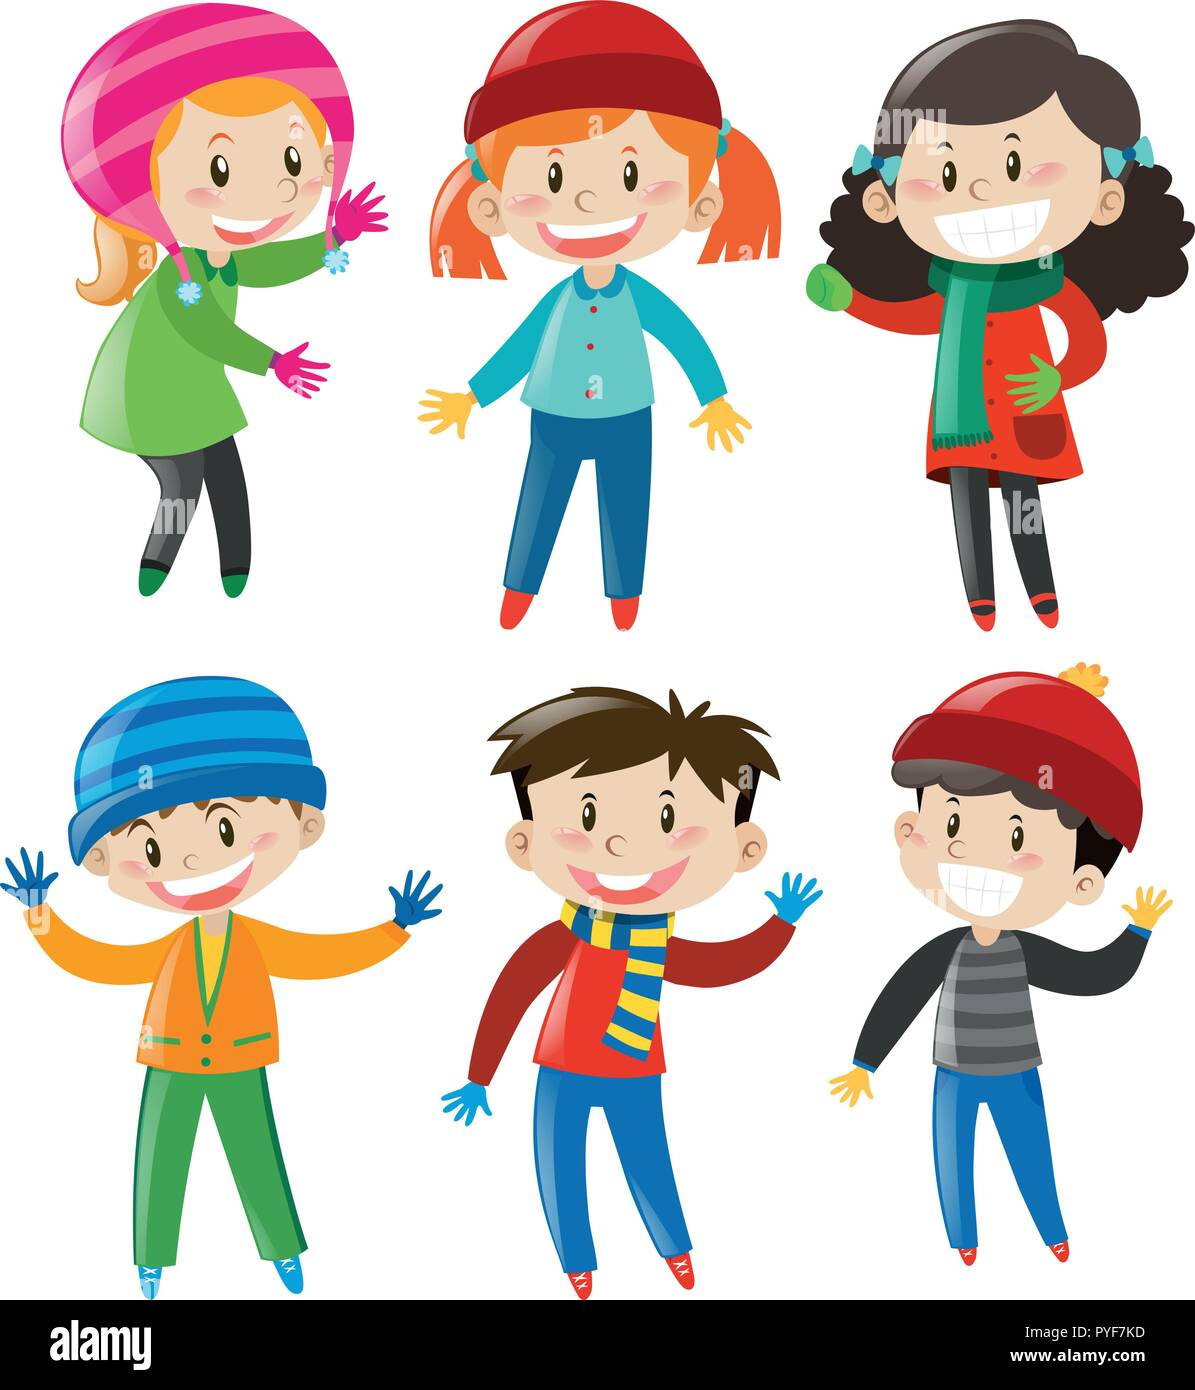 76531c80aae2 Boys and girls in winter outfit illustration Stock Vector Art ...